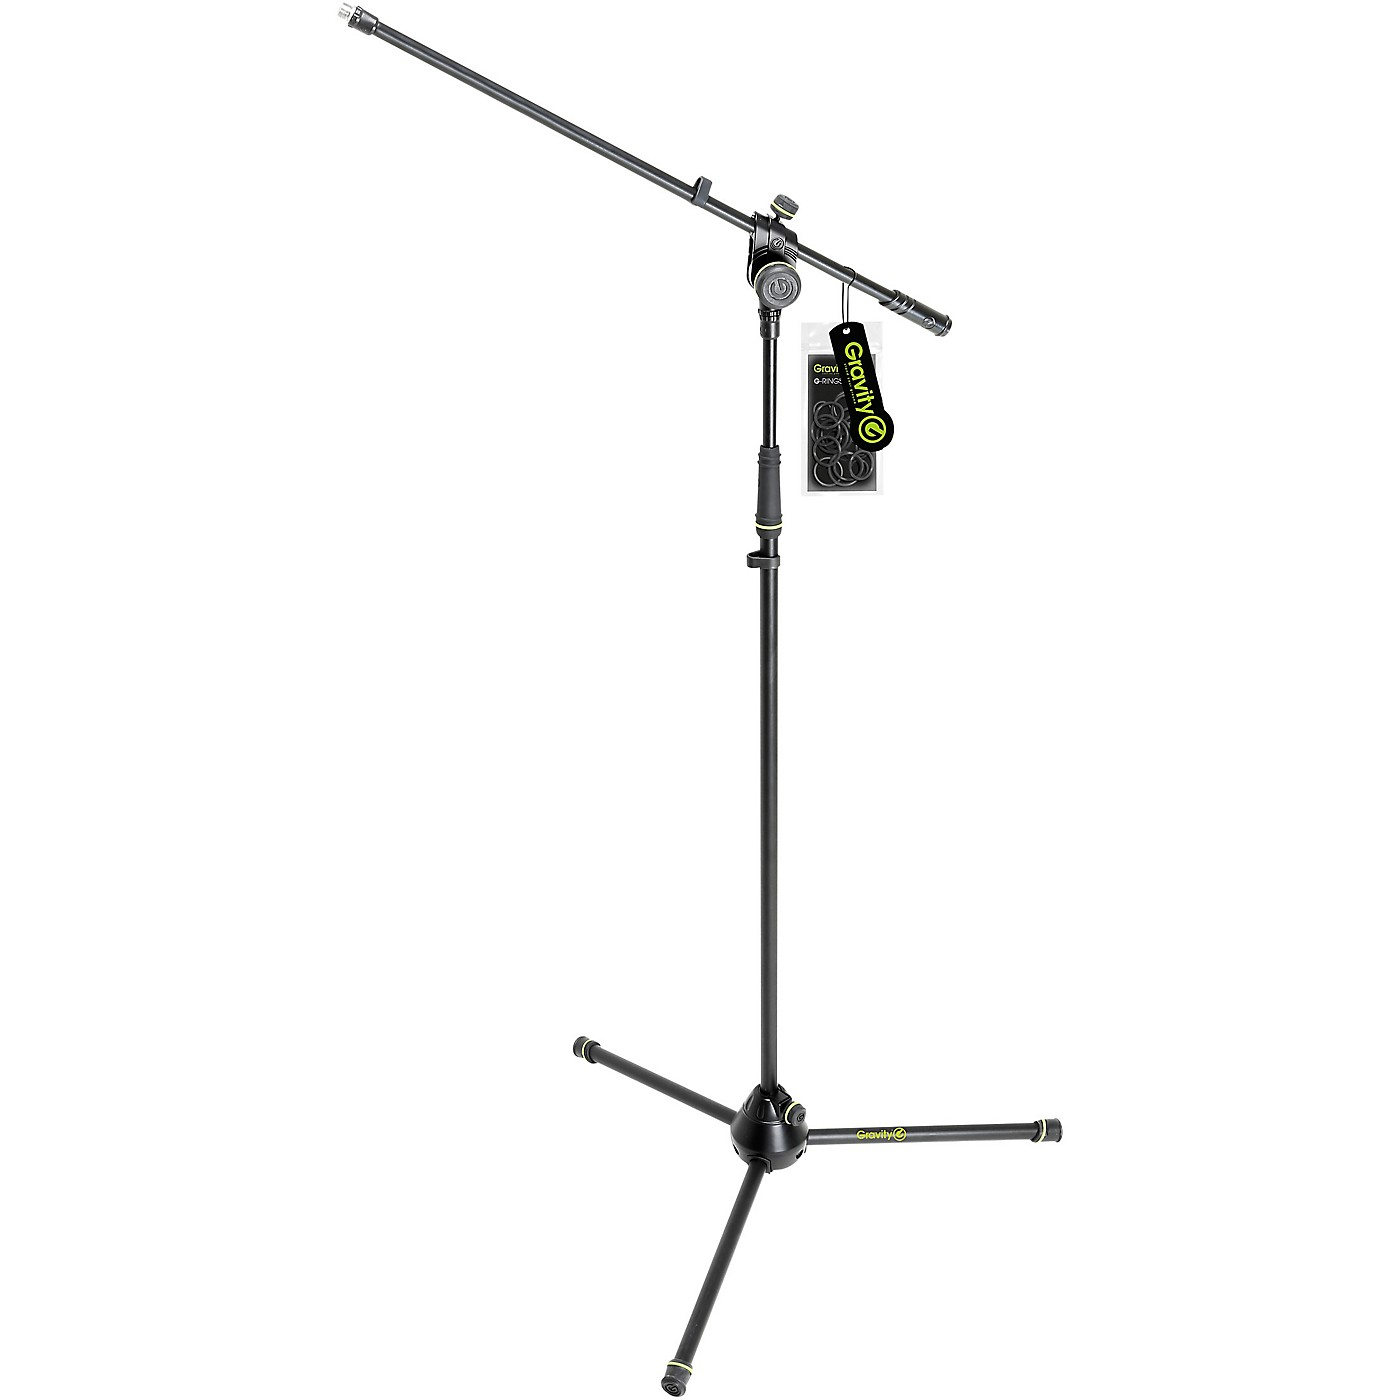 Gravity Stands Microphone Stand With Folding Tripod Base 2-Point Adjusting Boom thumbnail